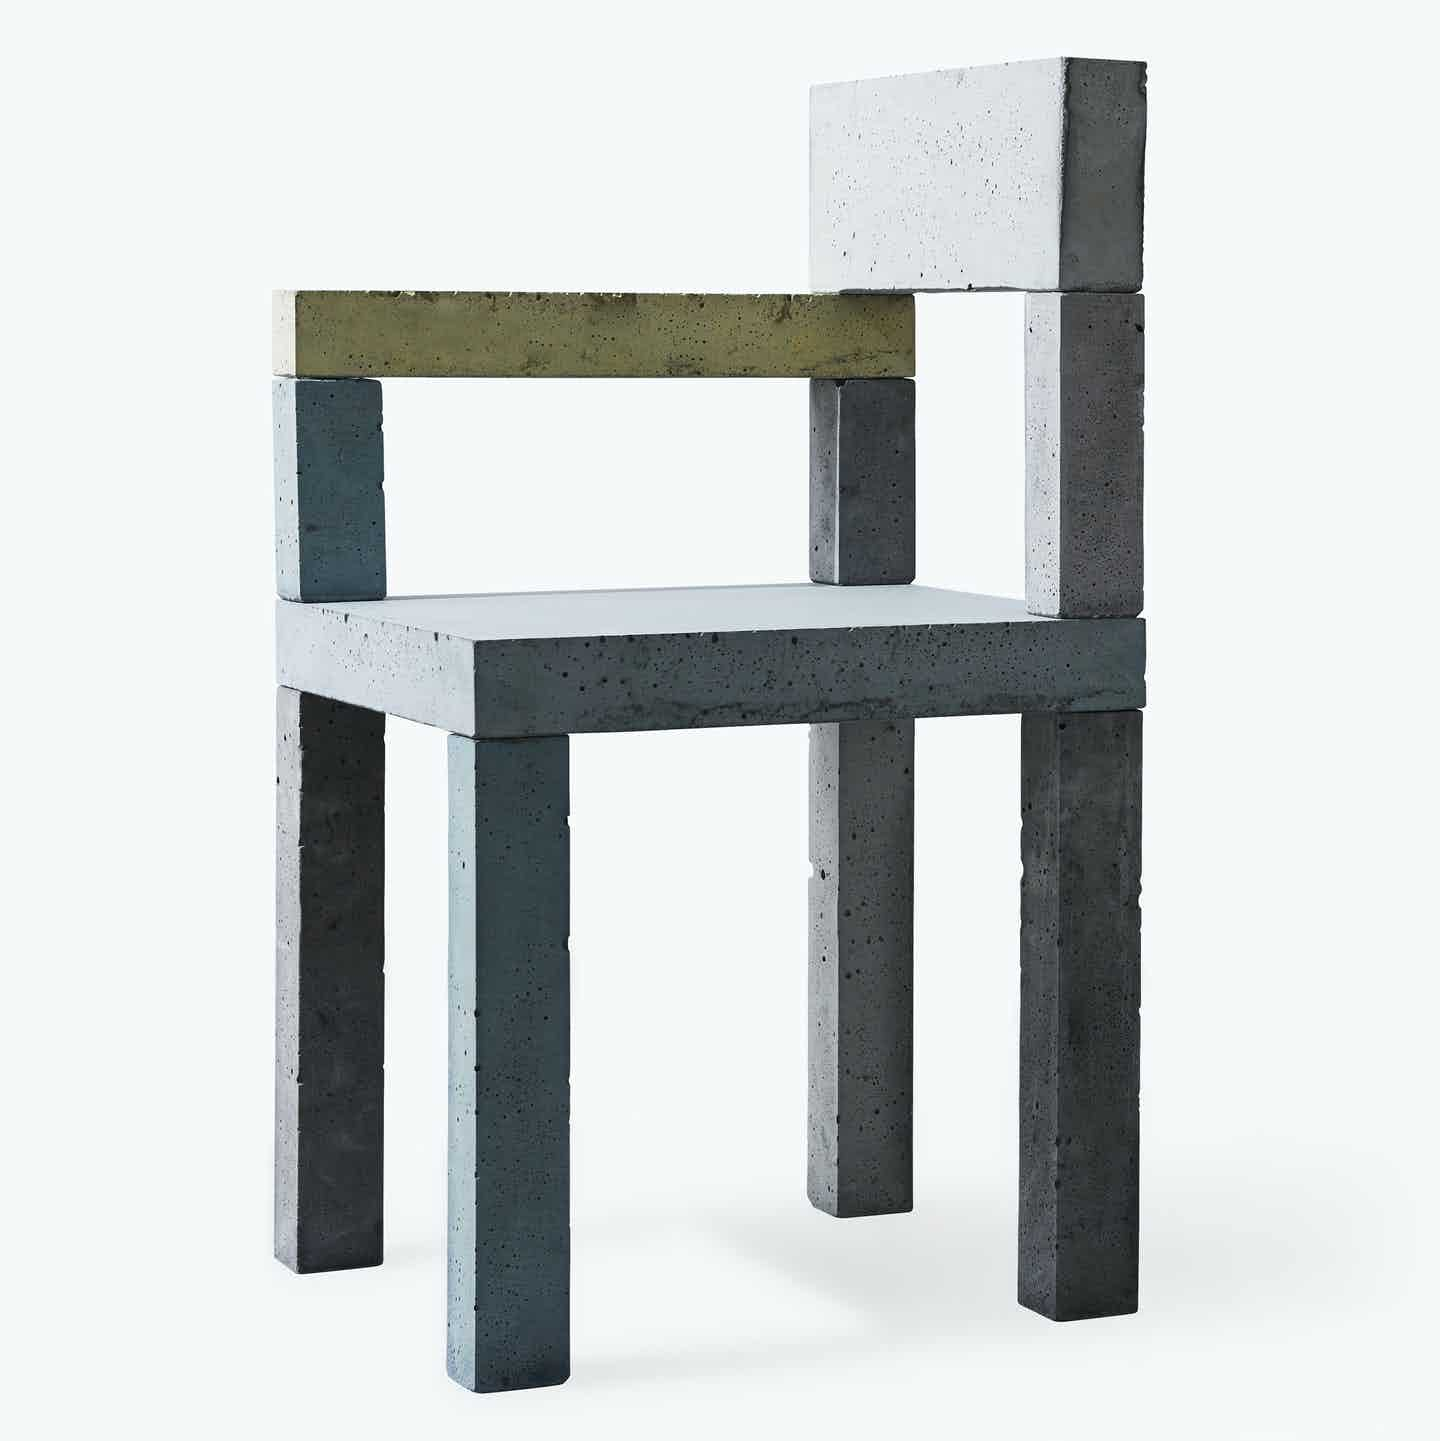 New works furniture untitled concrete chair angle haute living